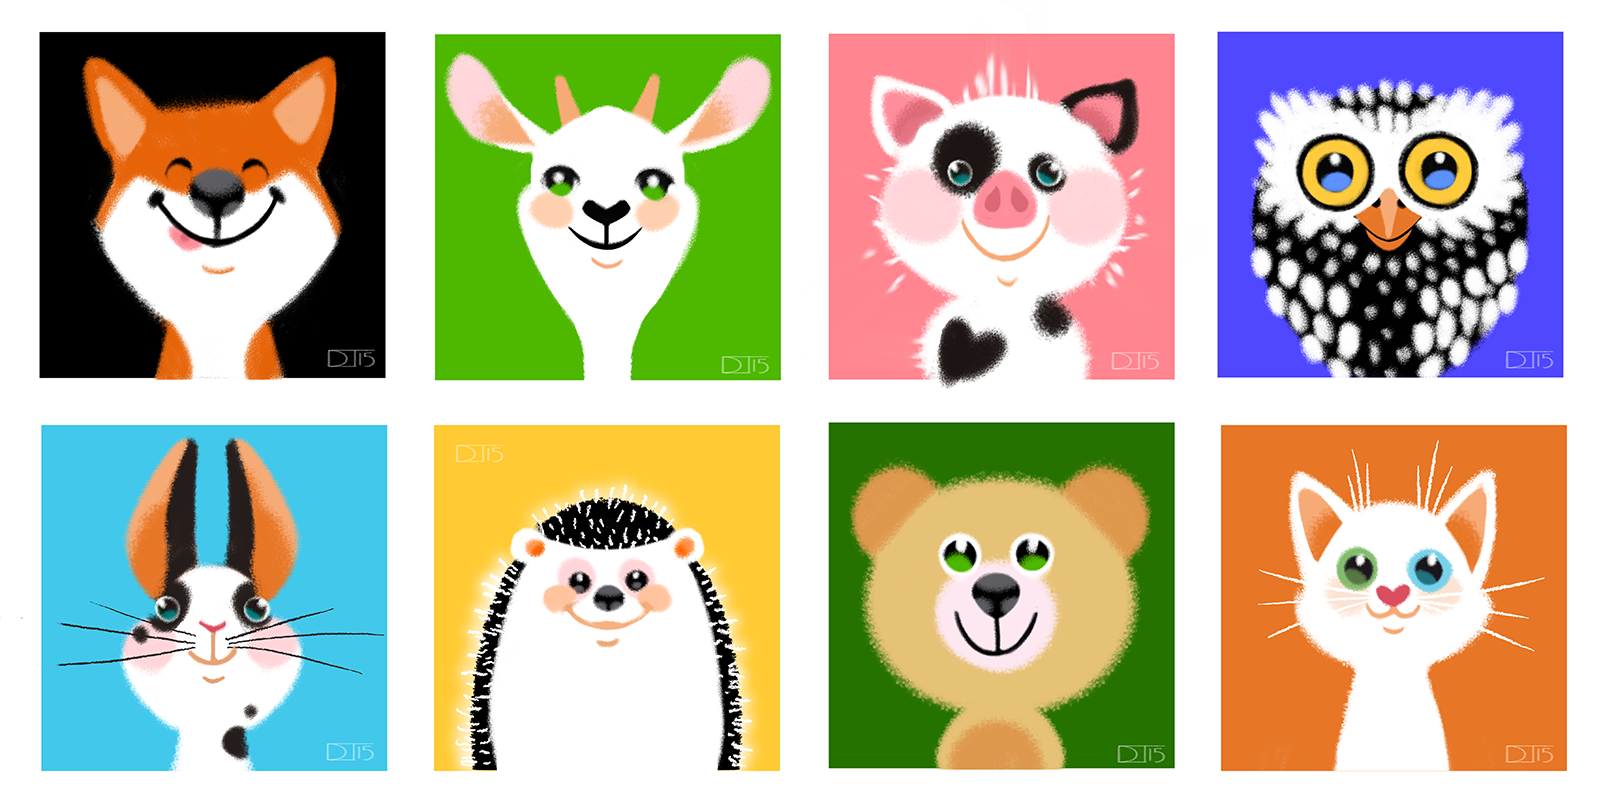 Animal faces. Concepts for paper cut illustrations for my baby-girl's room. I want to help my baby's eyes to develop easily in the most cutest way possible. Because at first the eyes of a newborn can catch mostly black and white I used simple shapes and contrast colors.